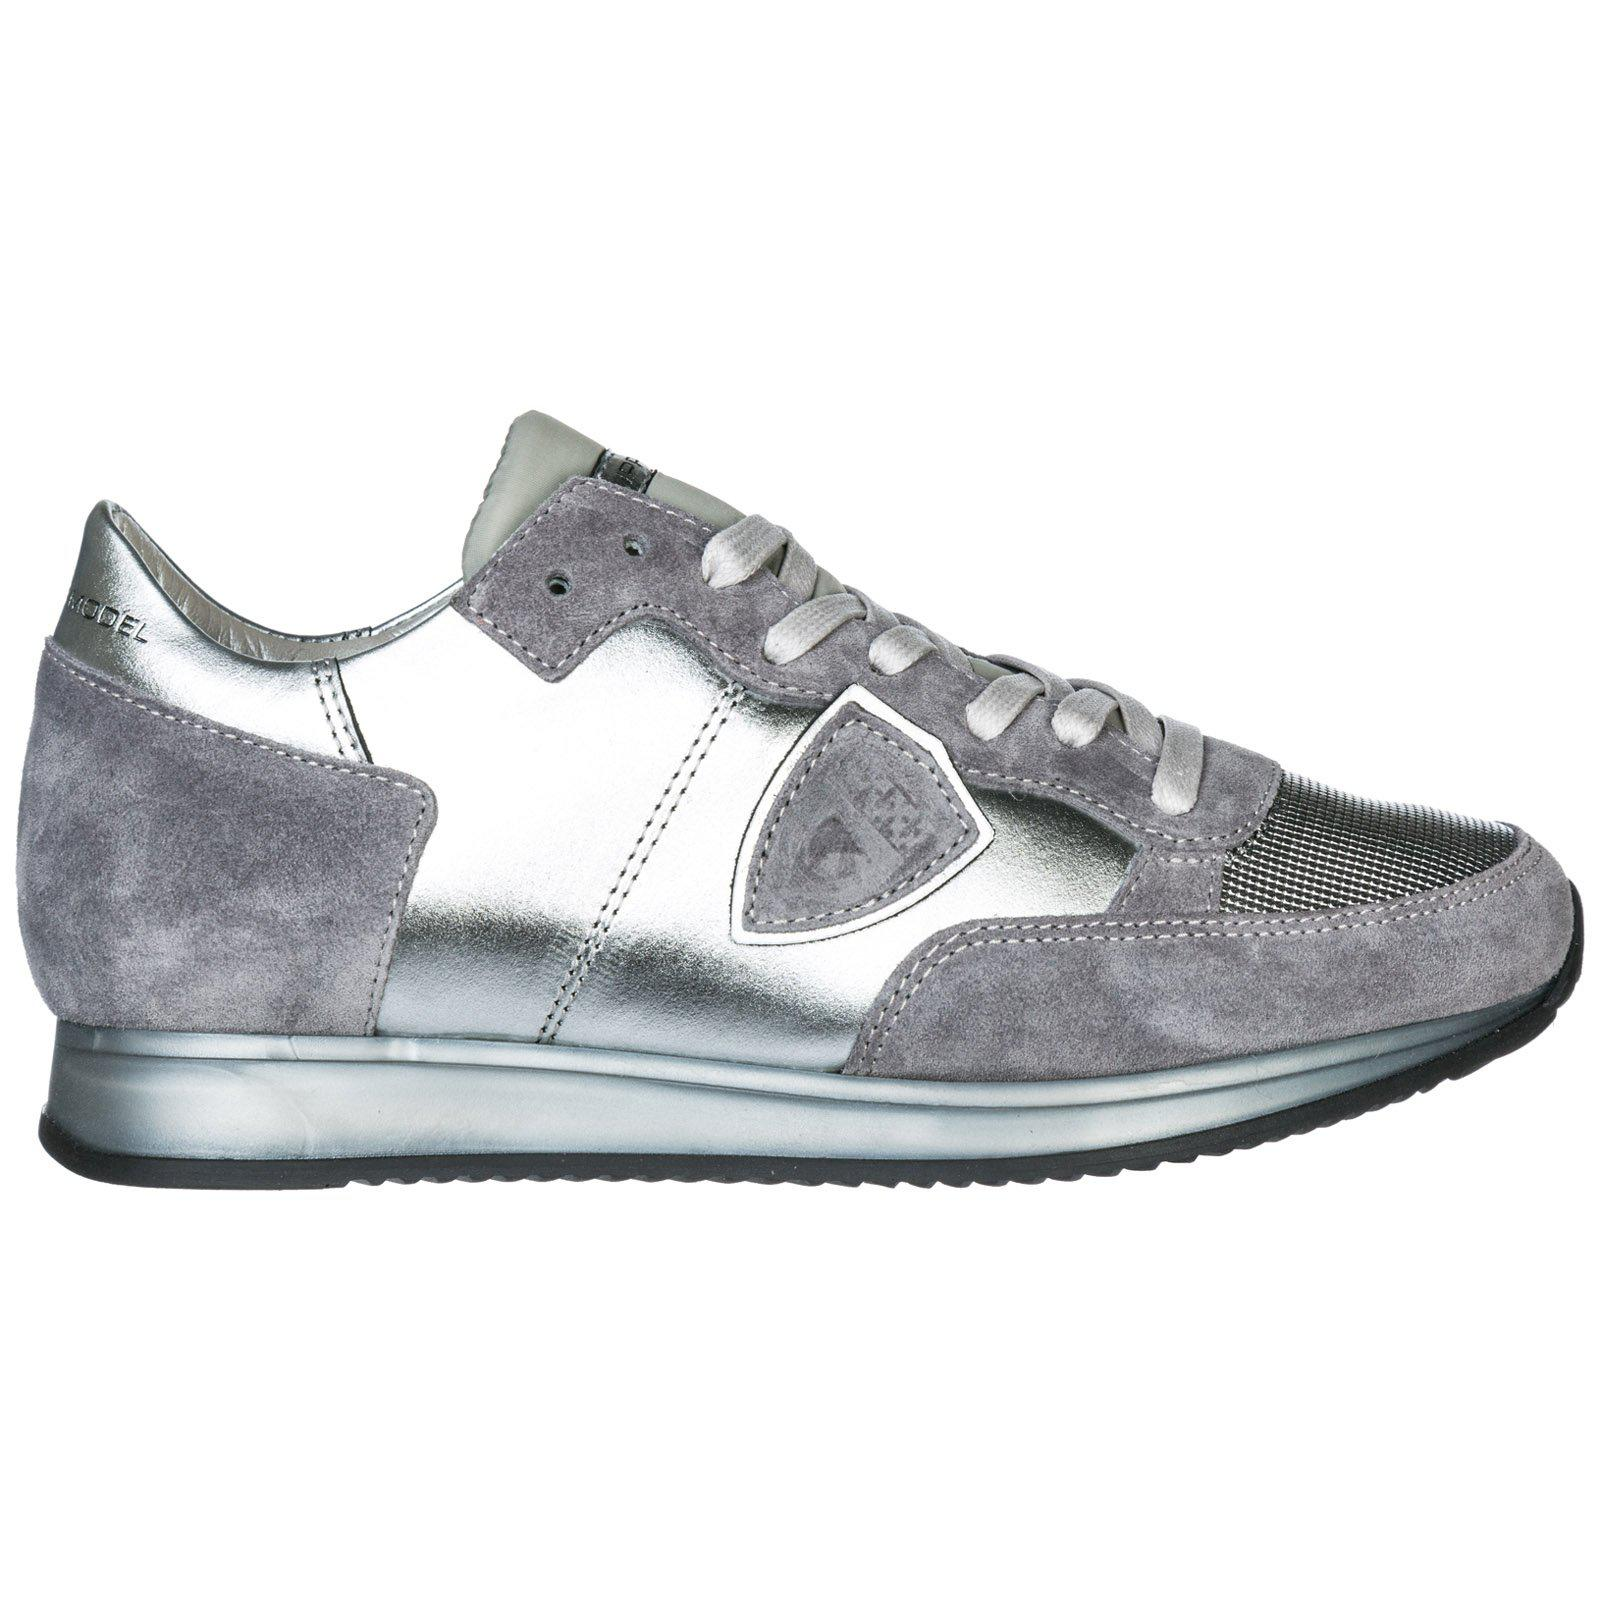 In Philippe Sneakers Model Panel Lyst Texture Metallic aTwAqx0